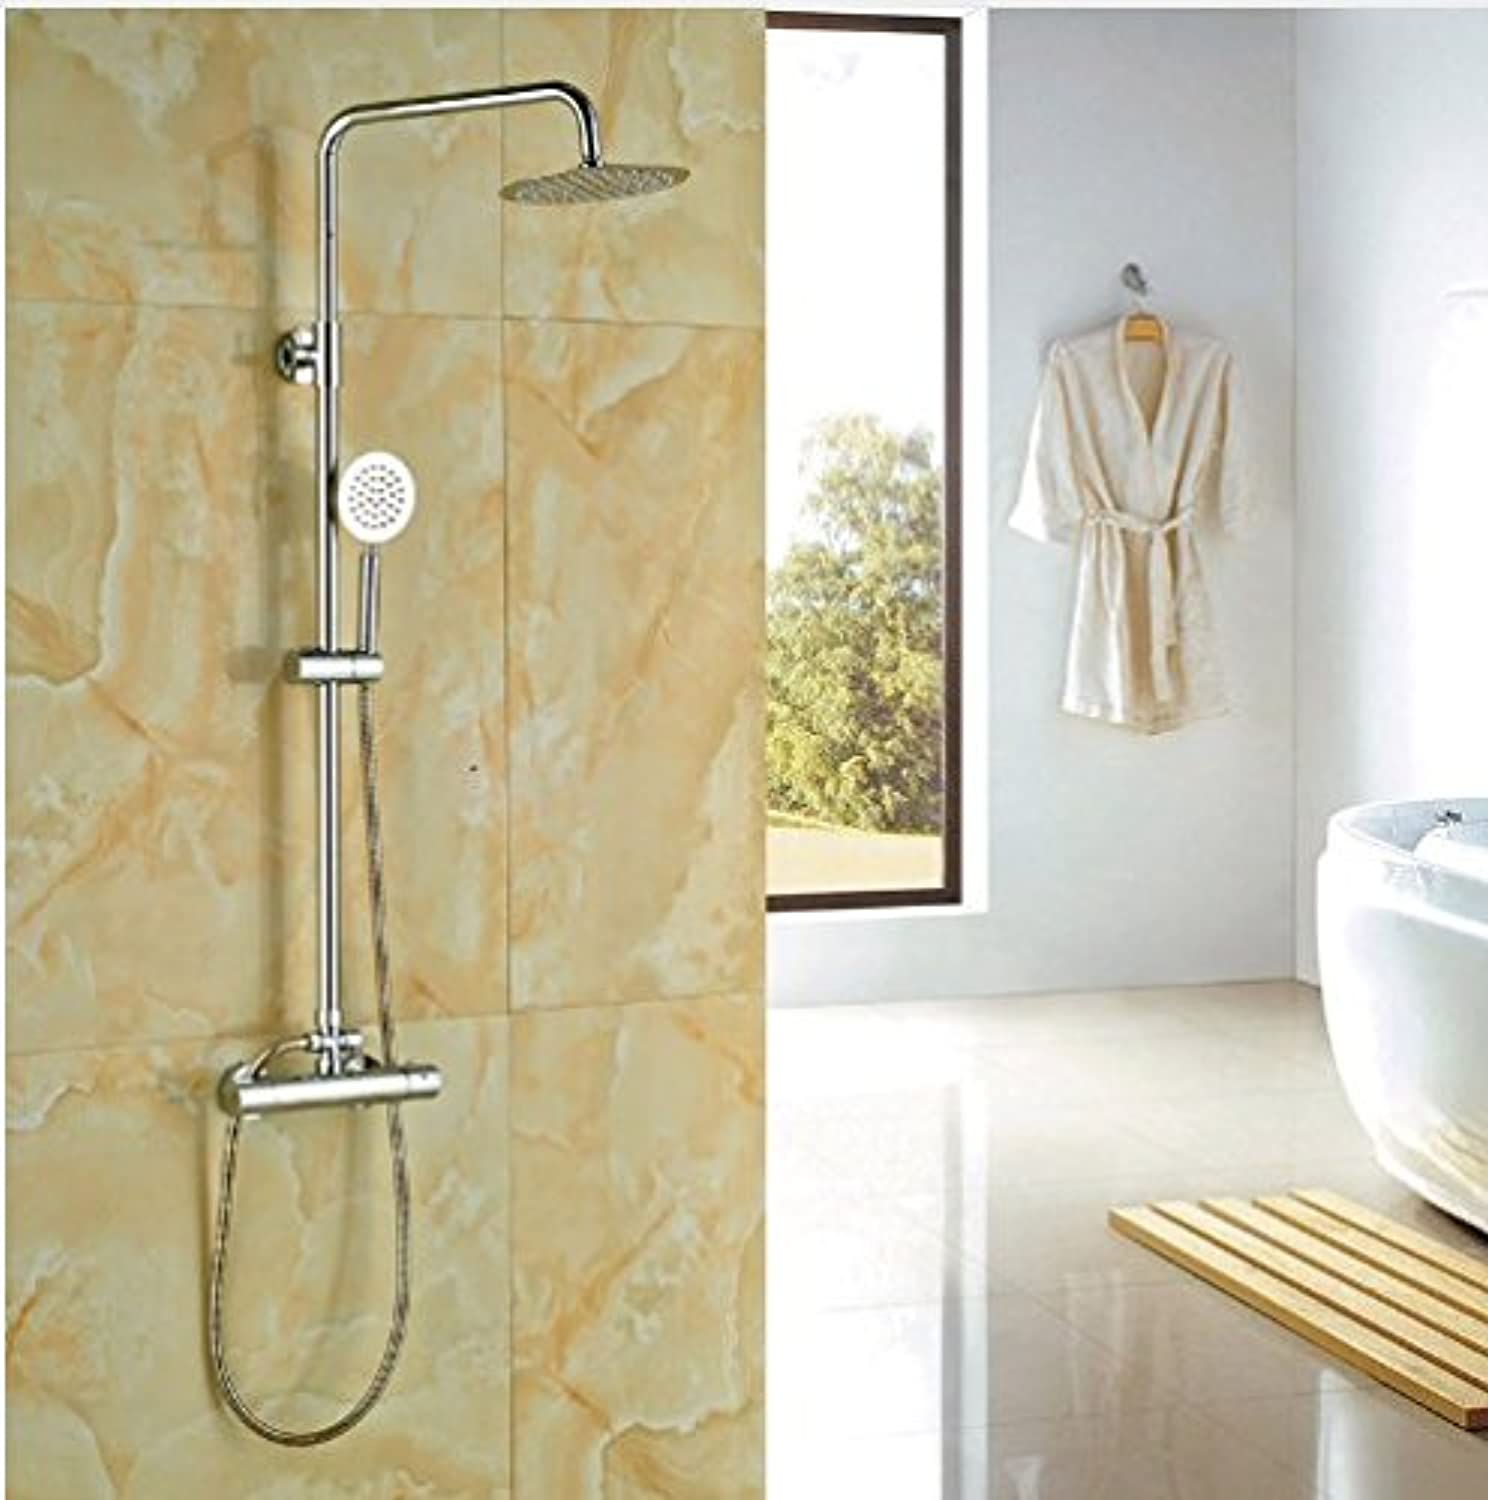 Gowe? Bath Rainfall Shower Set Chrome Polish Thermostatic Shower Faucet With Hand Shower Wall Mounted